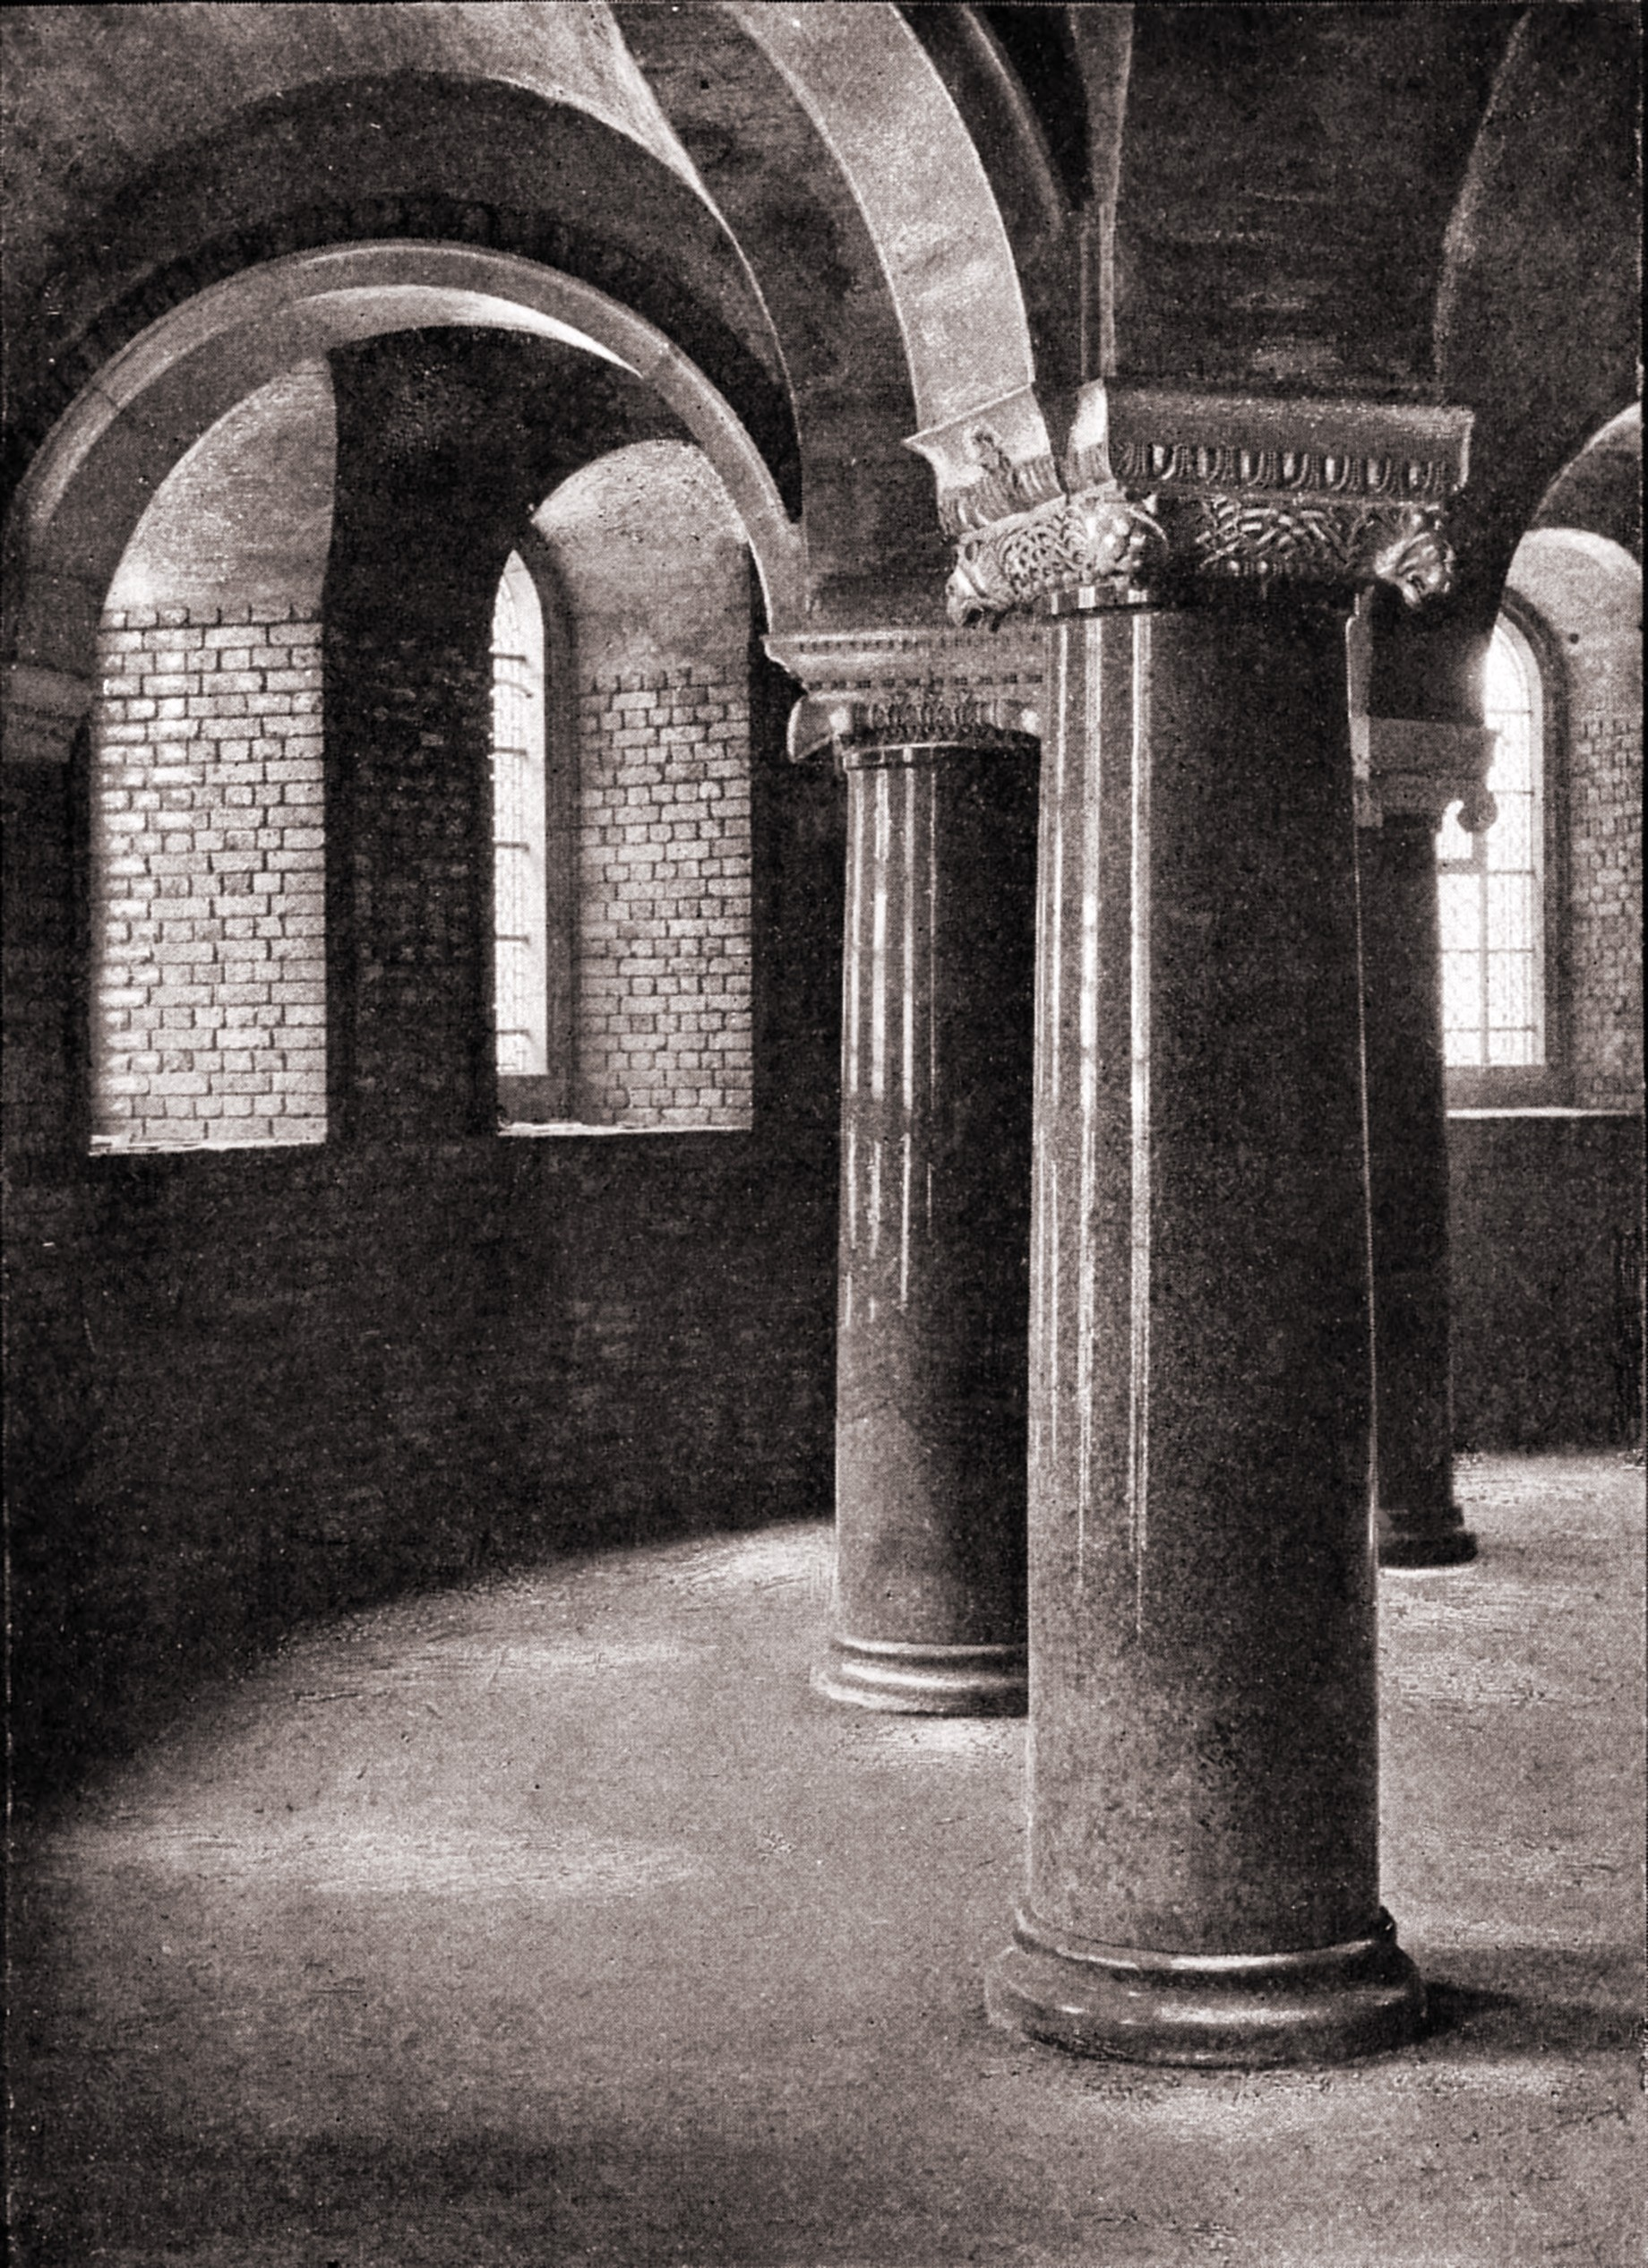 In the crypt, Westminster Cathedral, London by A. Lockett about 1923